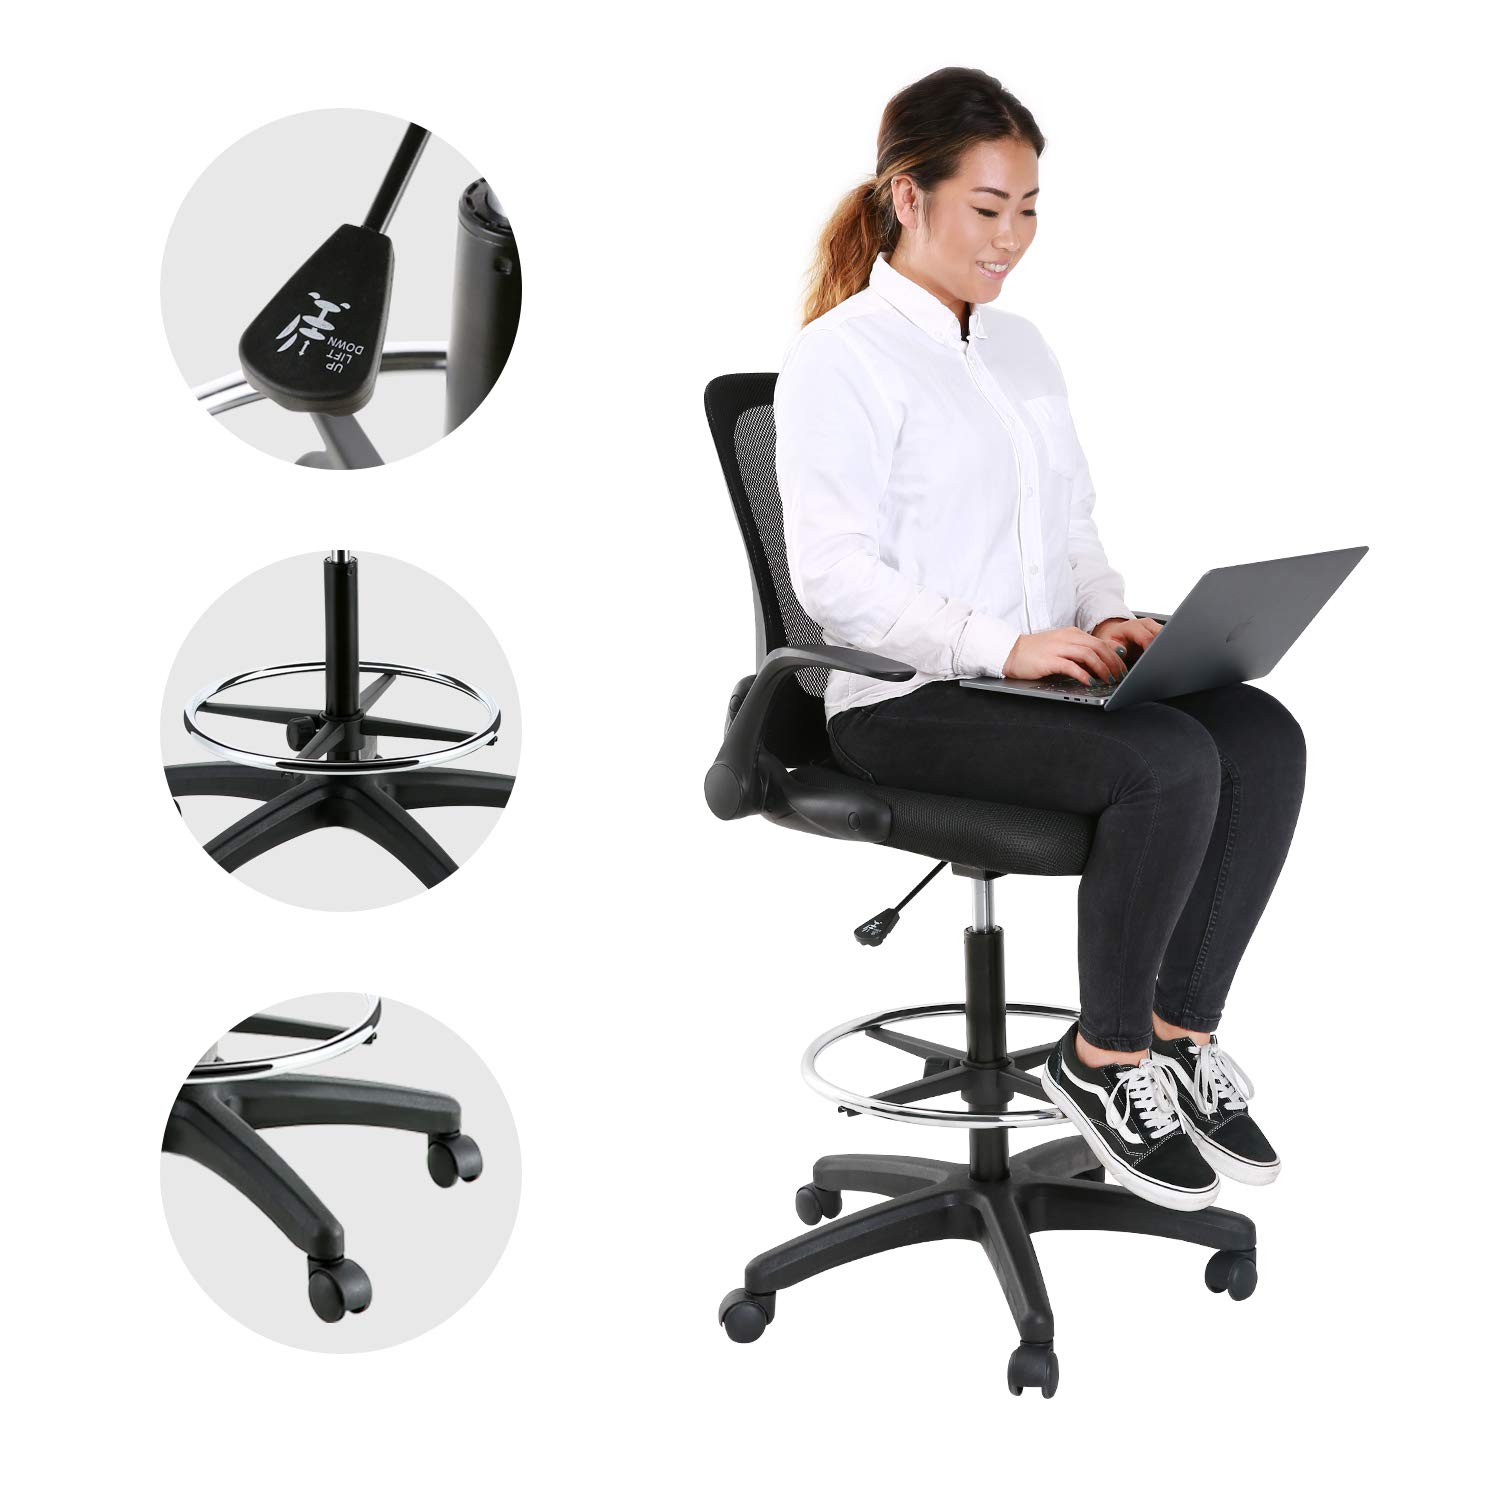 YOUNIS Drafting Chair with Black Fabric Seat, Adjustable Armrest and Foot Ring, Black Breathable mesh backrest, Reception Desk Chair, Tall Office Chair by YOUNIS (Image #4)